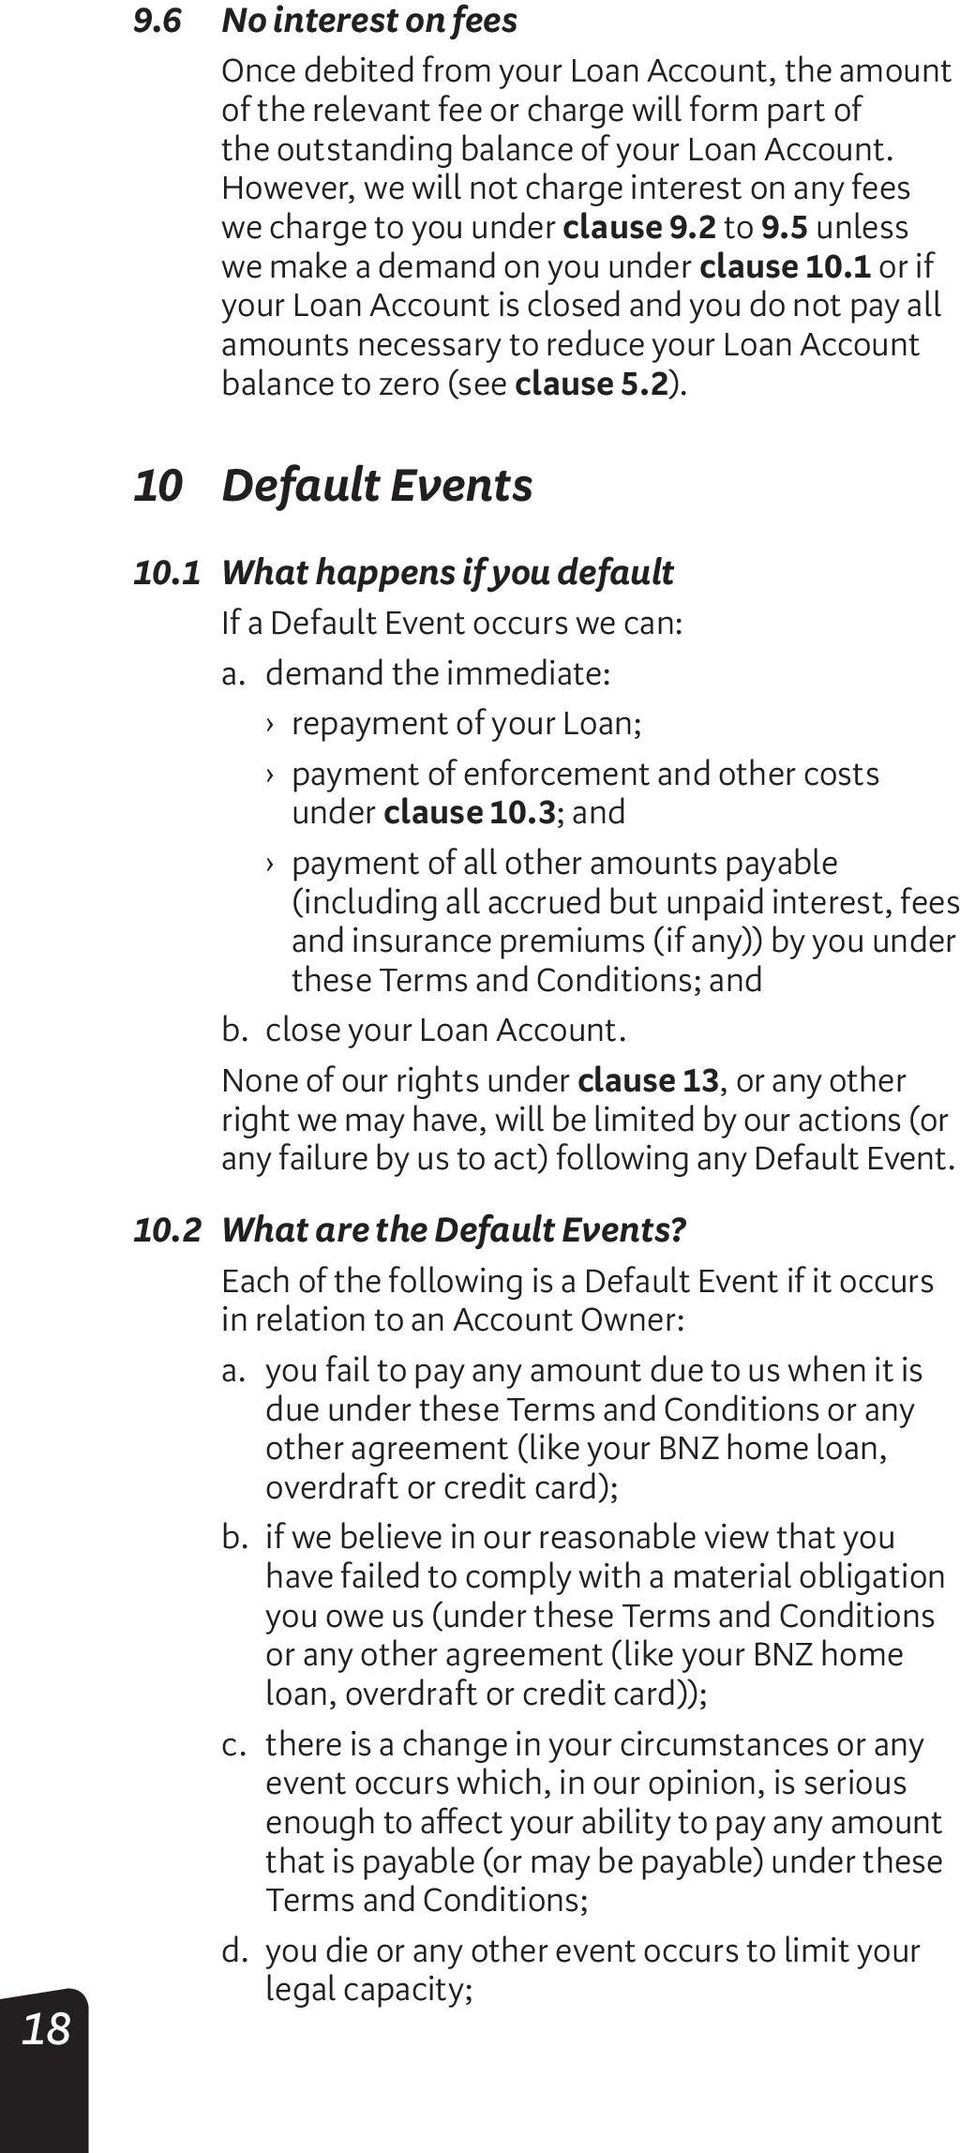 1 or if your Loan Account is closed and you do not pay all amounts necessary to reduce your Loan Account balance to zero (see clause 5.2). 10 Default Events 10.